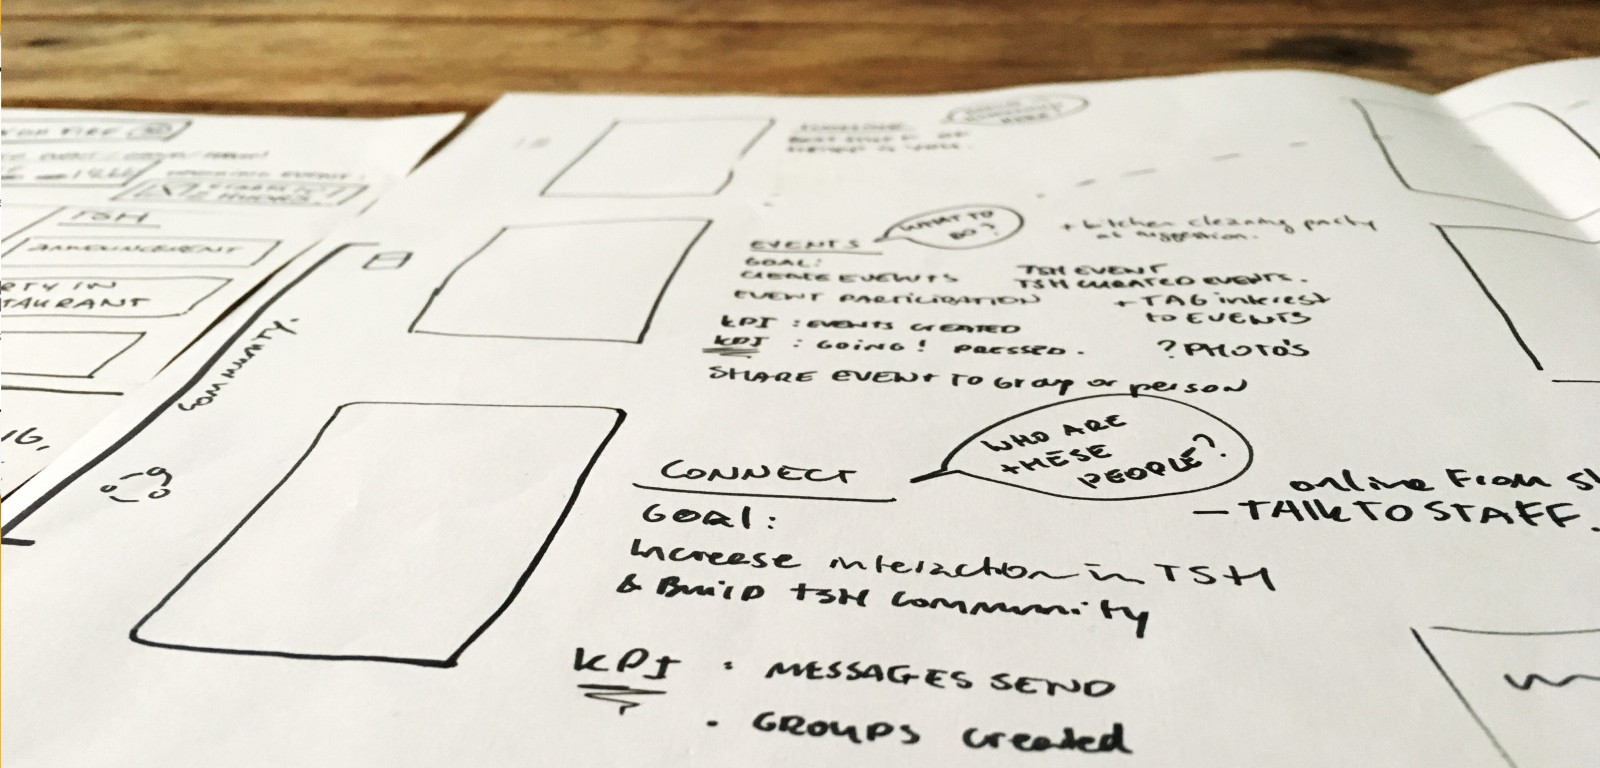 7 UX Principles by a Service Design Company